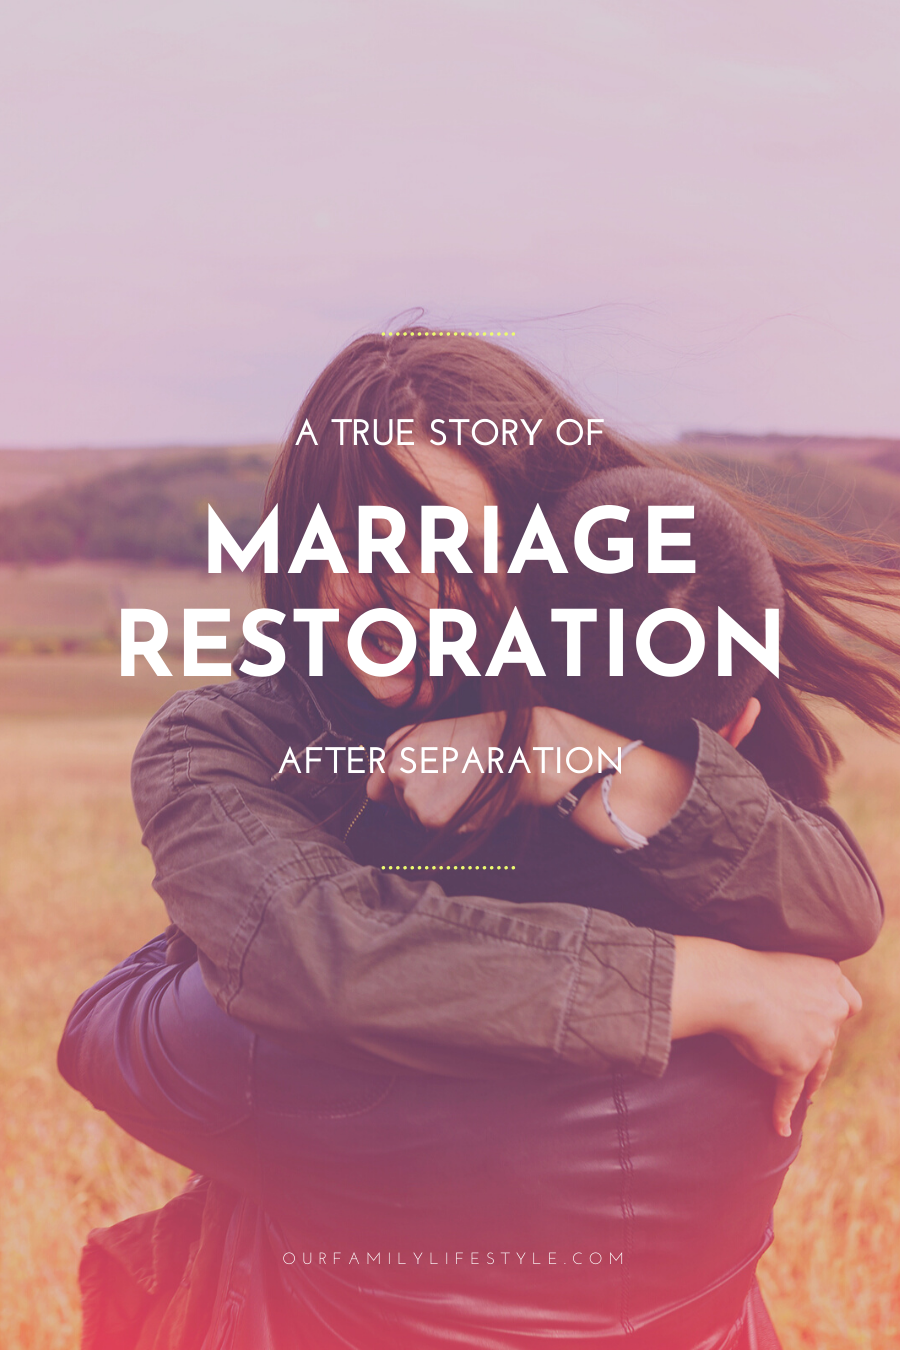 A Story of Marriage Restoration After Separation